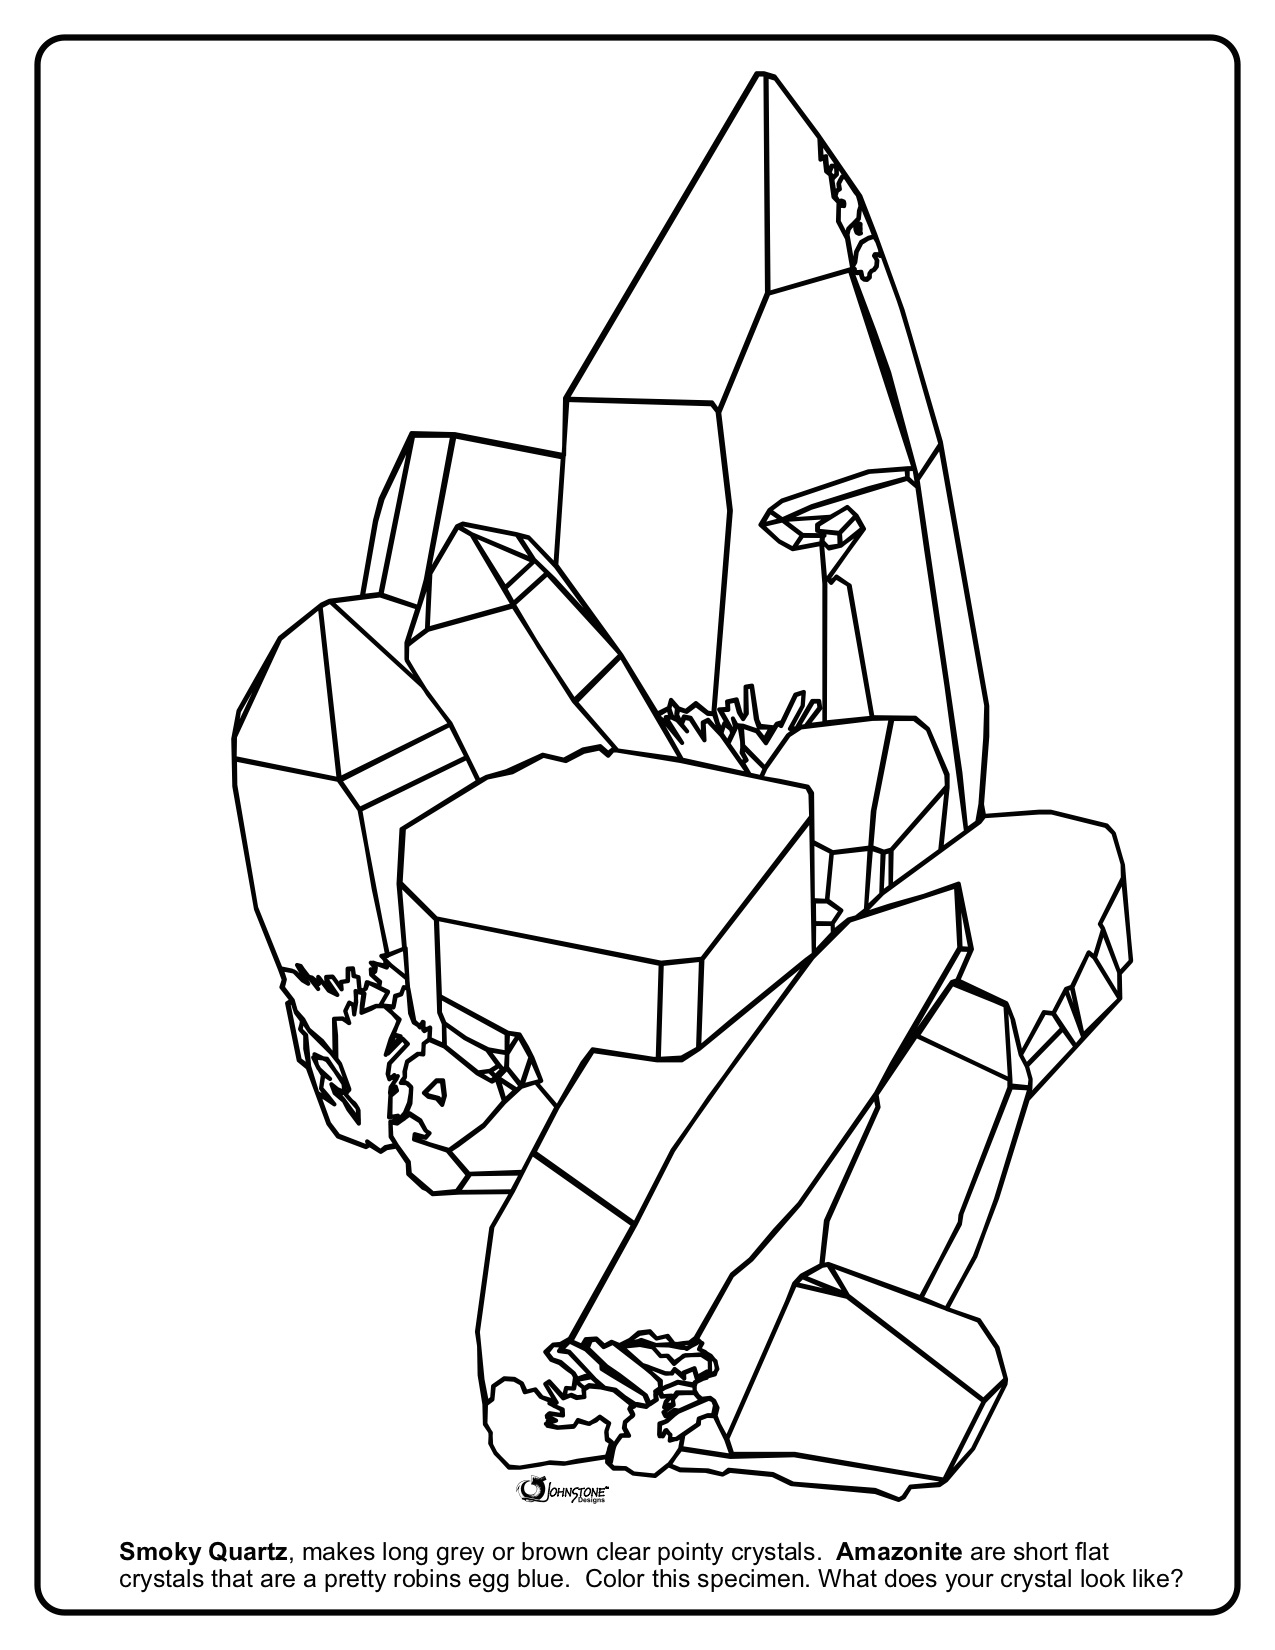 Smokey Quartz and Amazonite Coloring Page